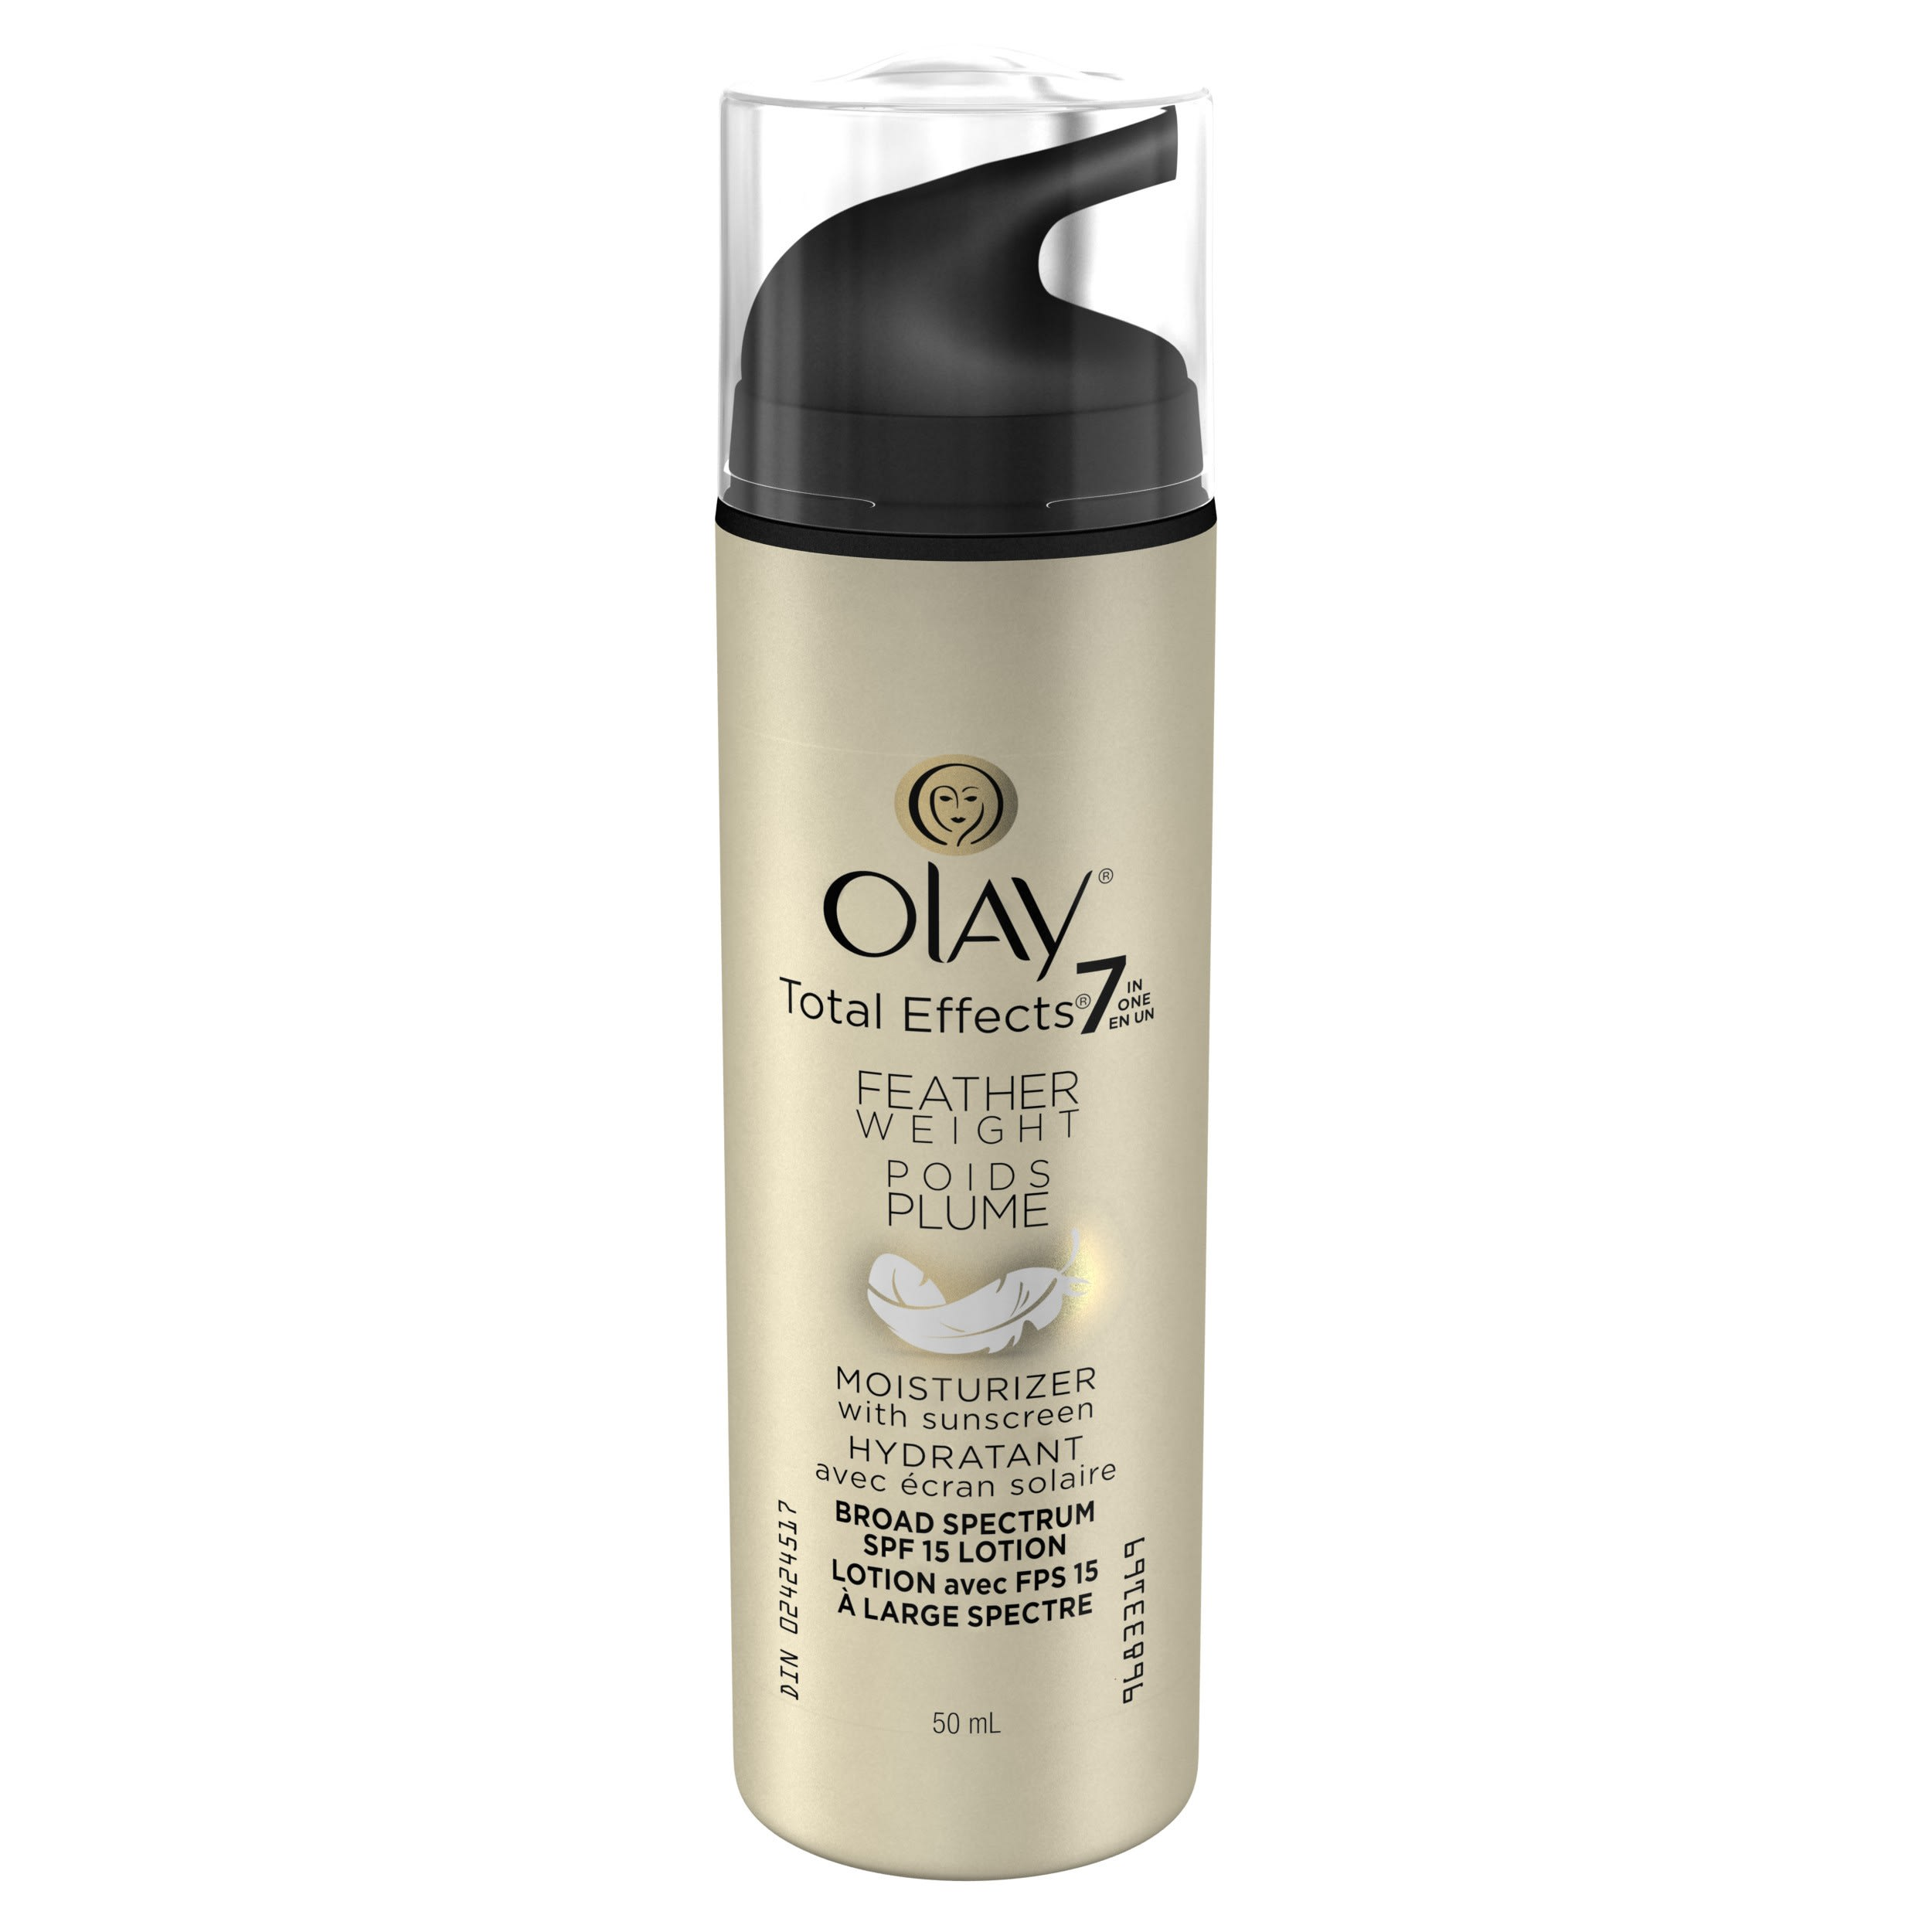 Olay Total Effects Feather Weight Moisturizer with SPF 15 3